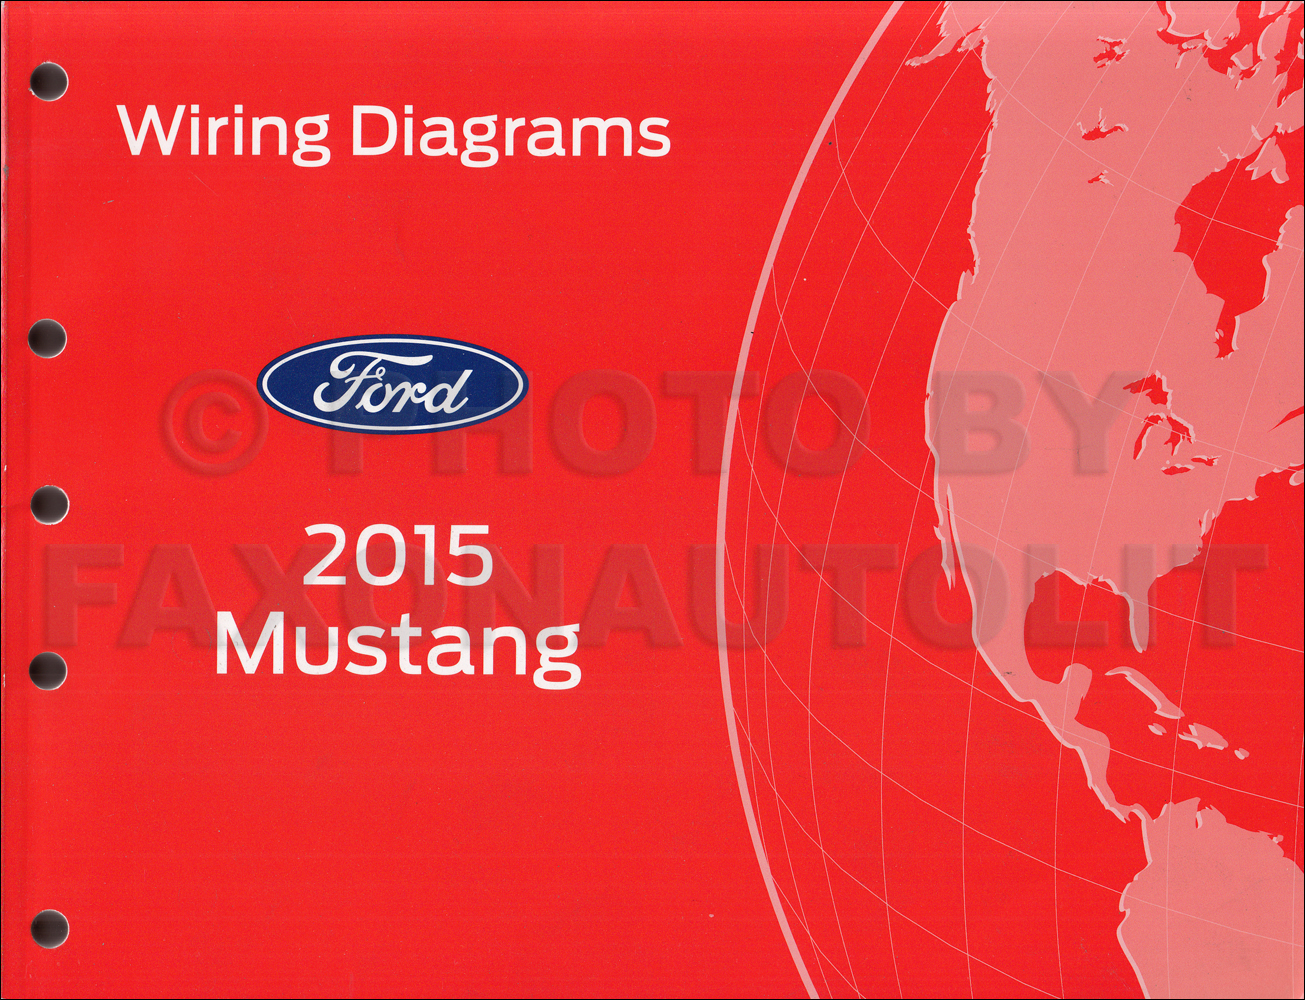 [DVZP_7254]   2015 Ford Mustang Wiring Diagram Manual Original | 2015 Mustang Wiring Diagram |  | Faxon Auto Literature